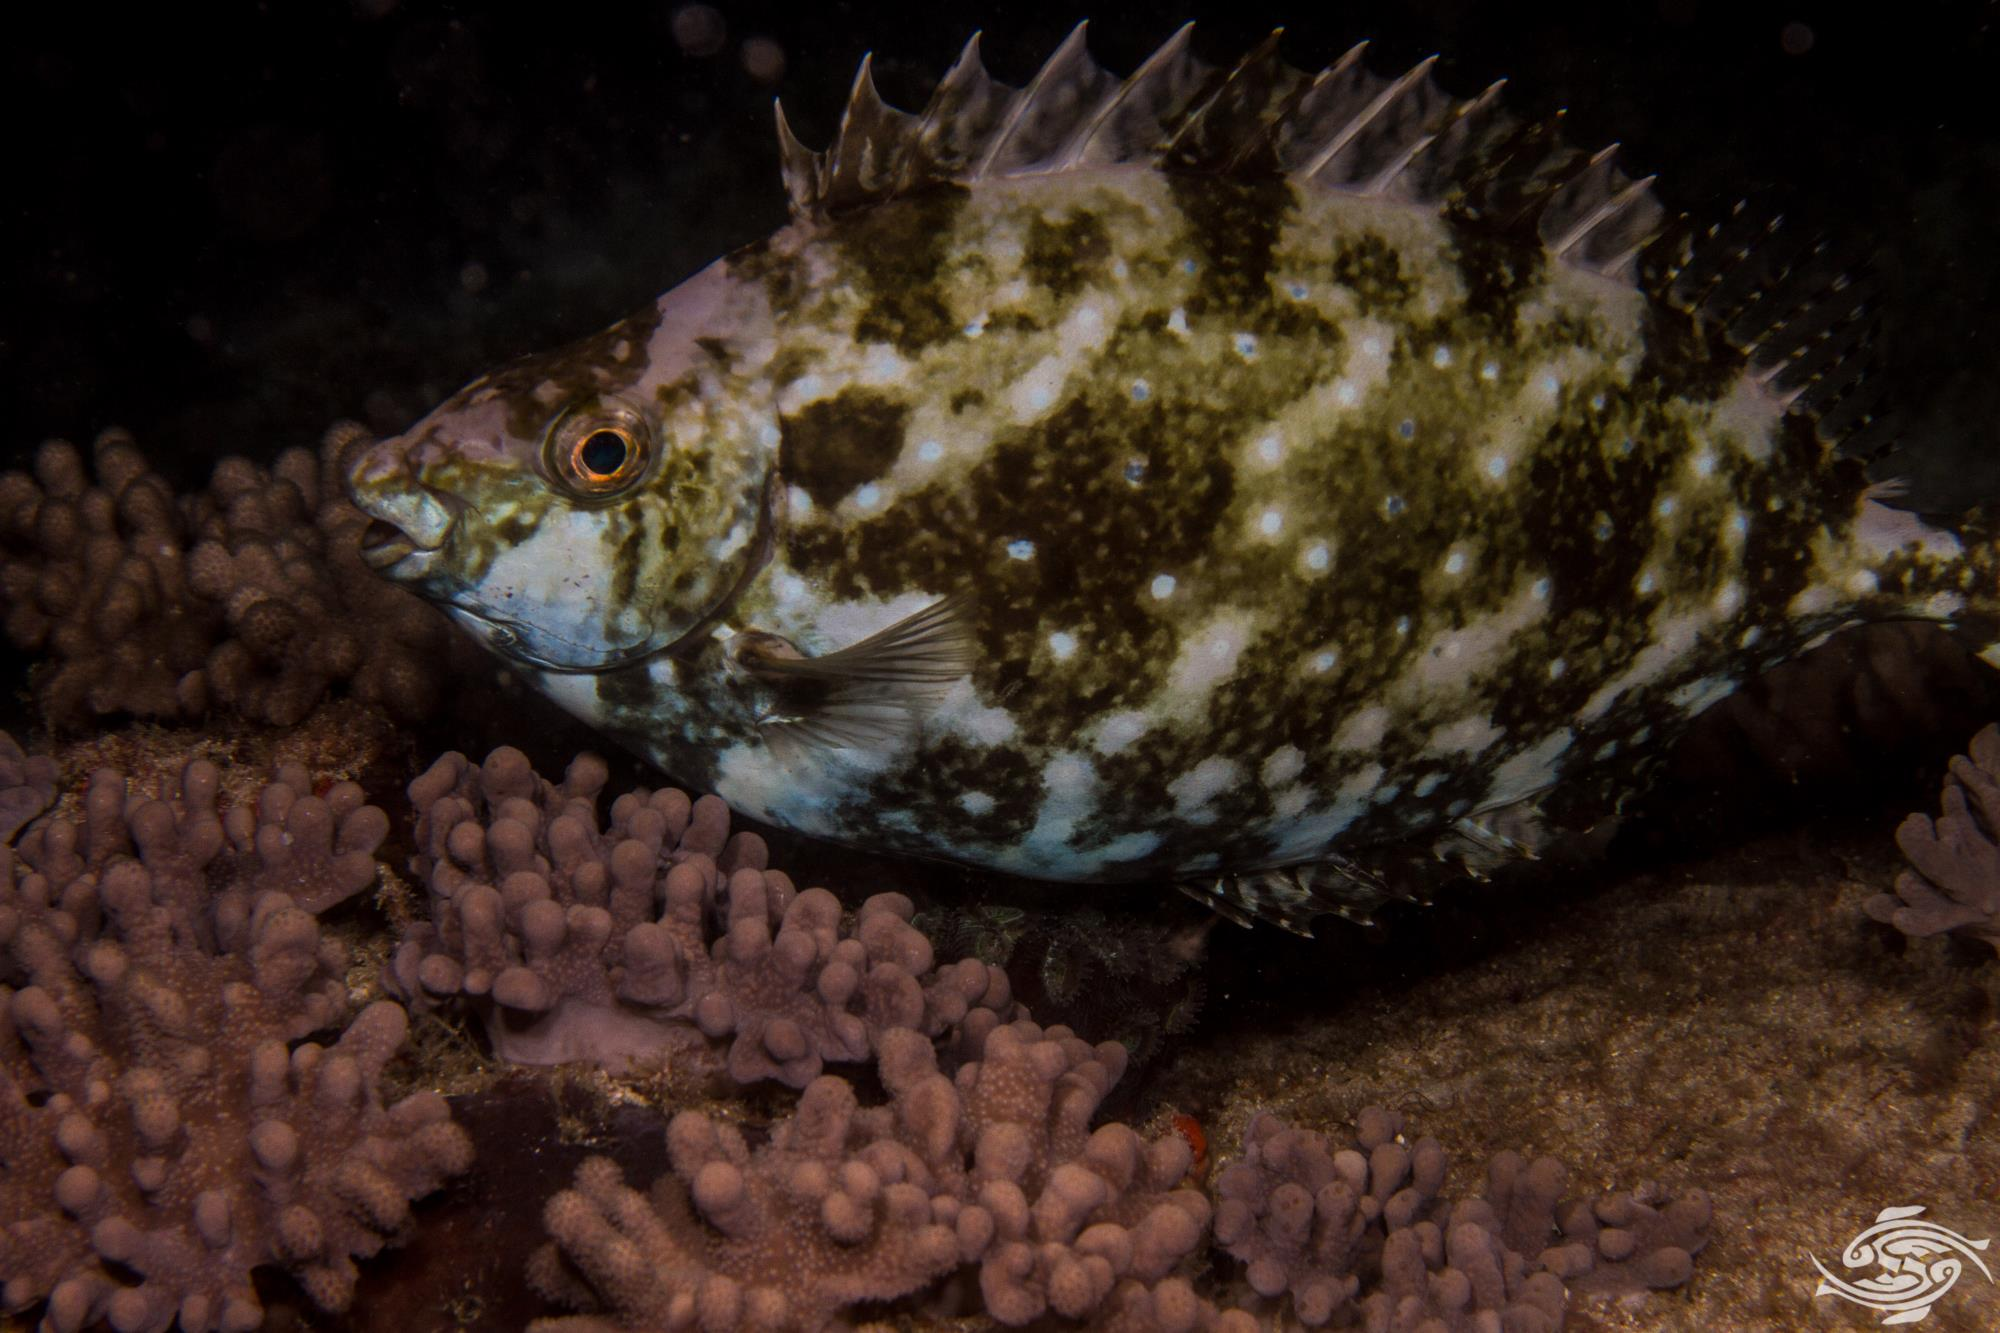 Whitespotted rabbitfish Siganus sutor also known as the Shoemaker spinefoot